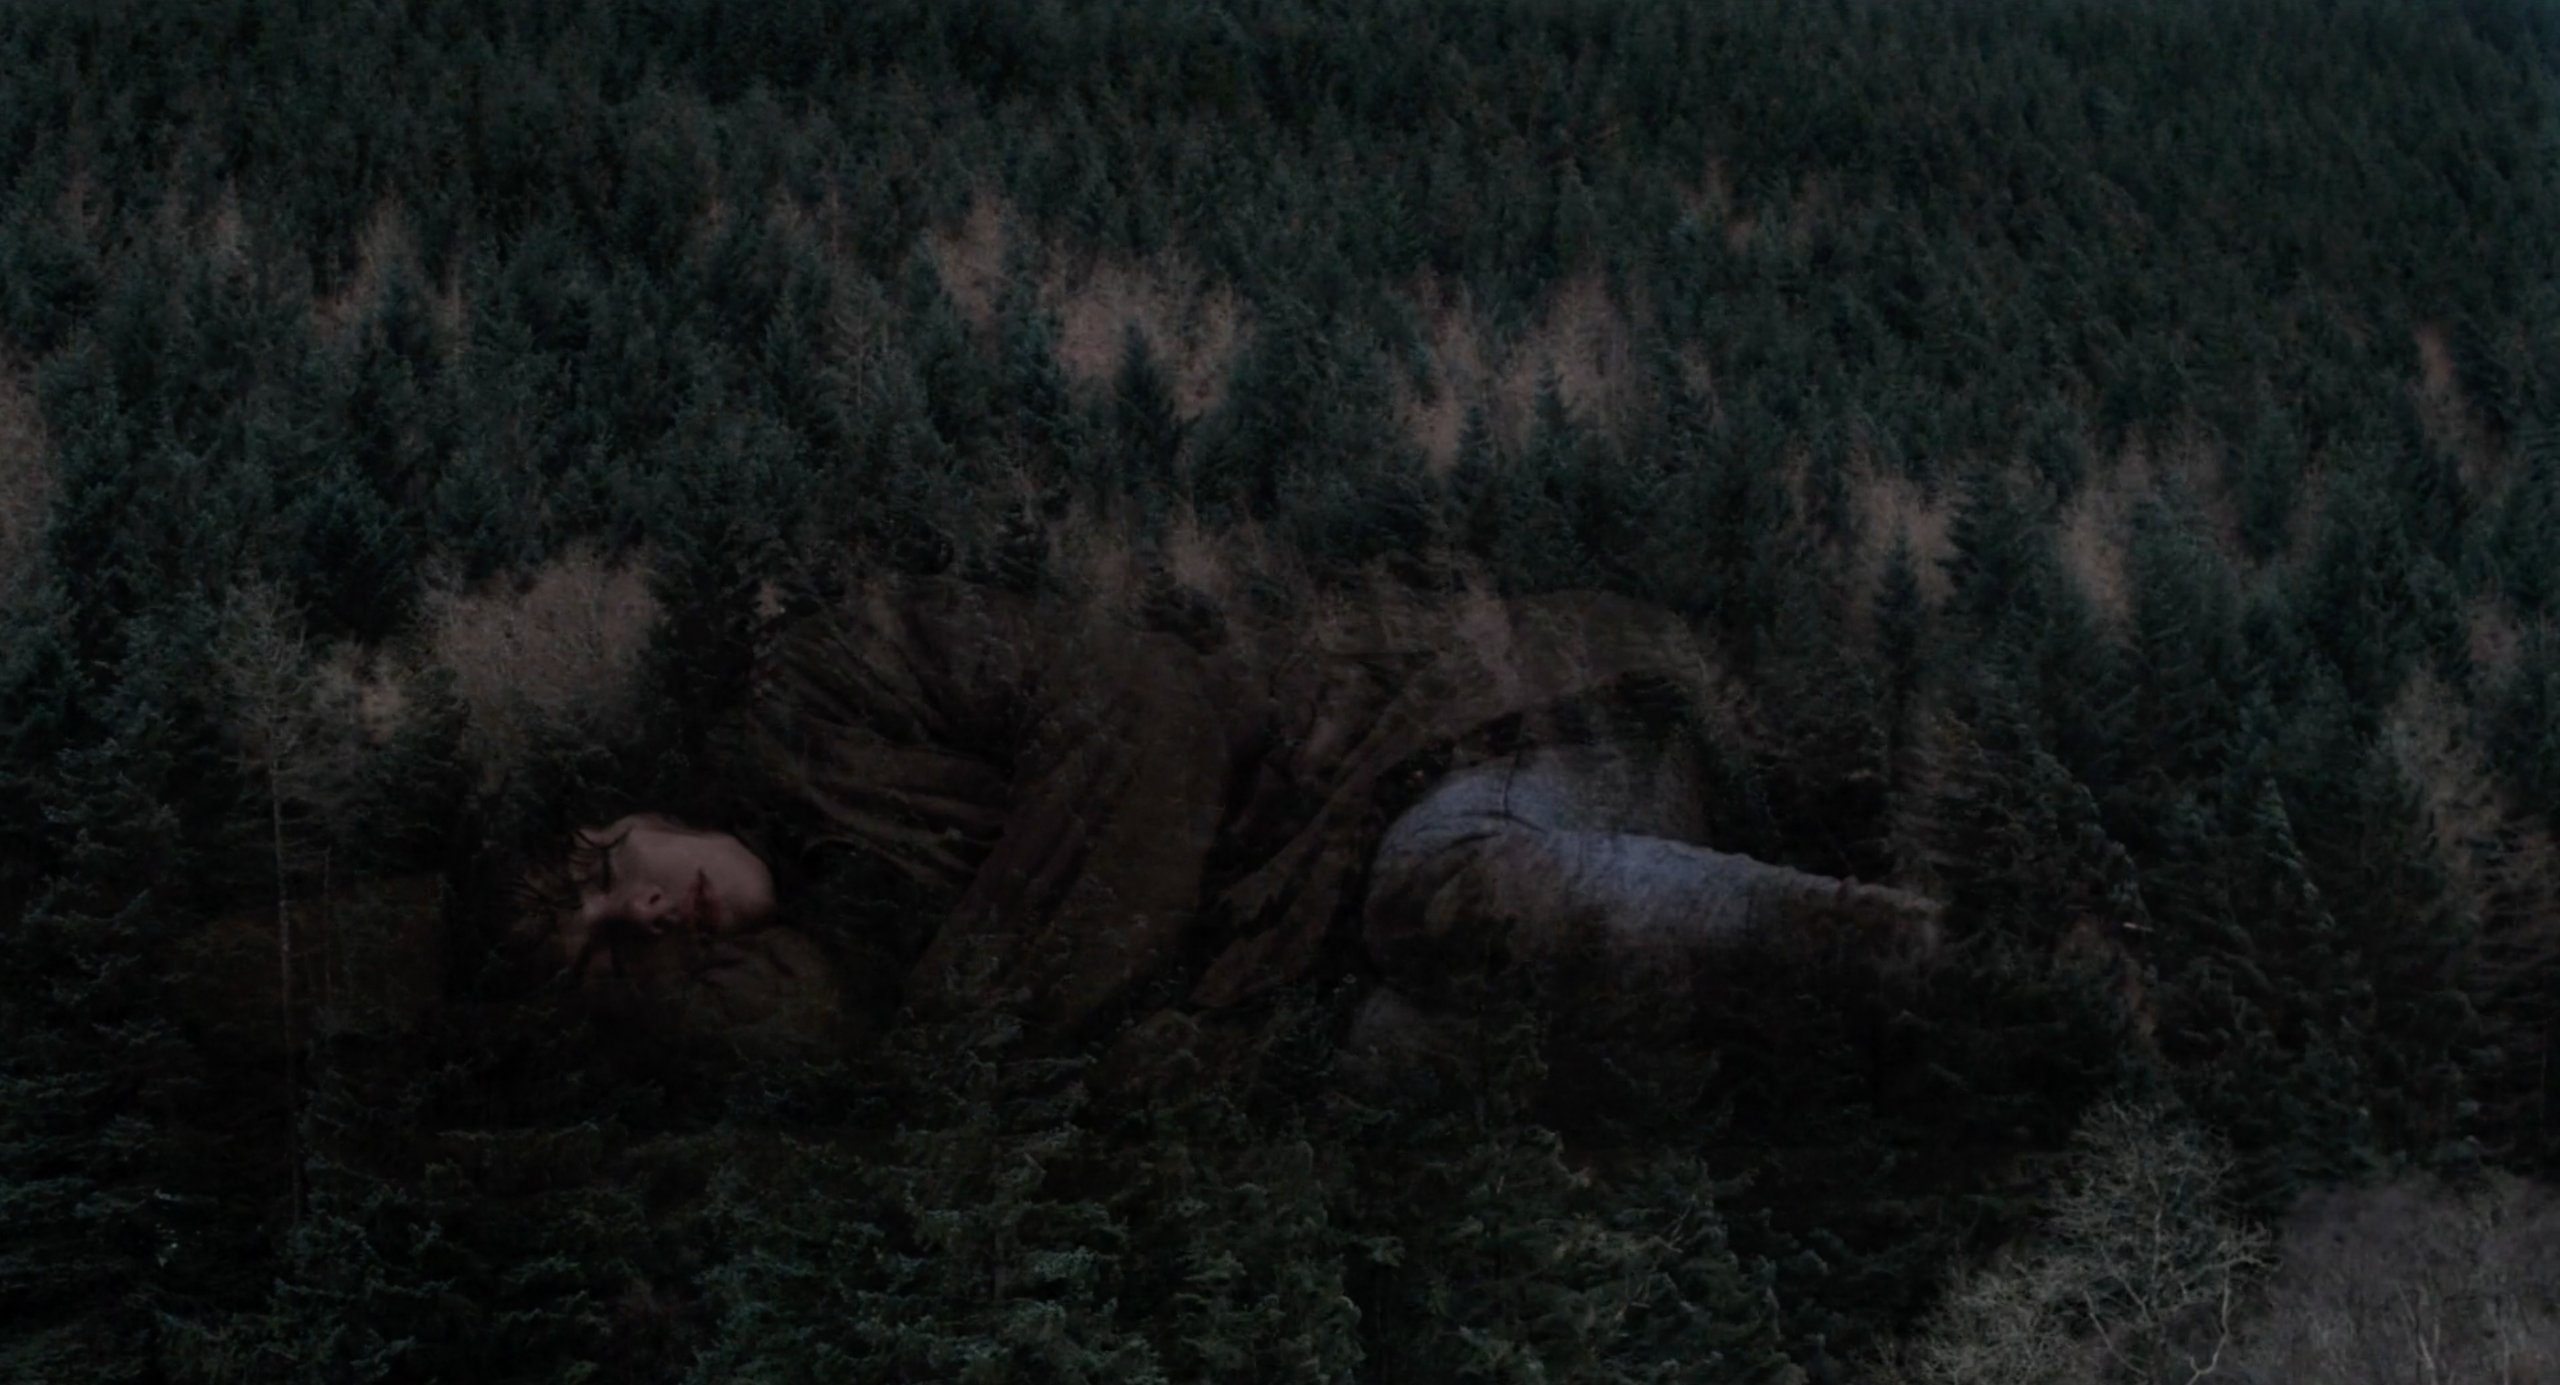 Scarlett Johansson fades into the trees of a forest in Under the Skin